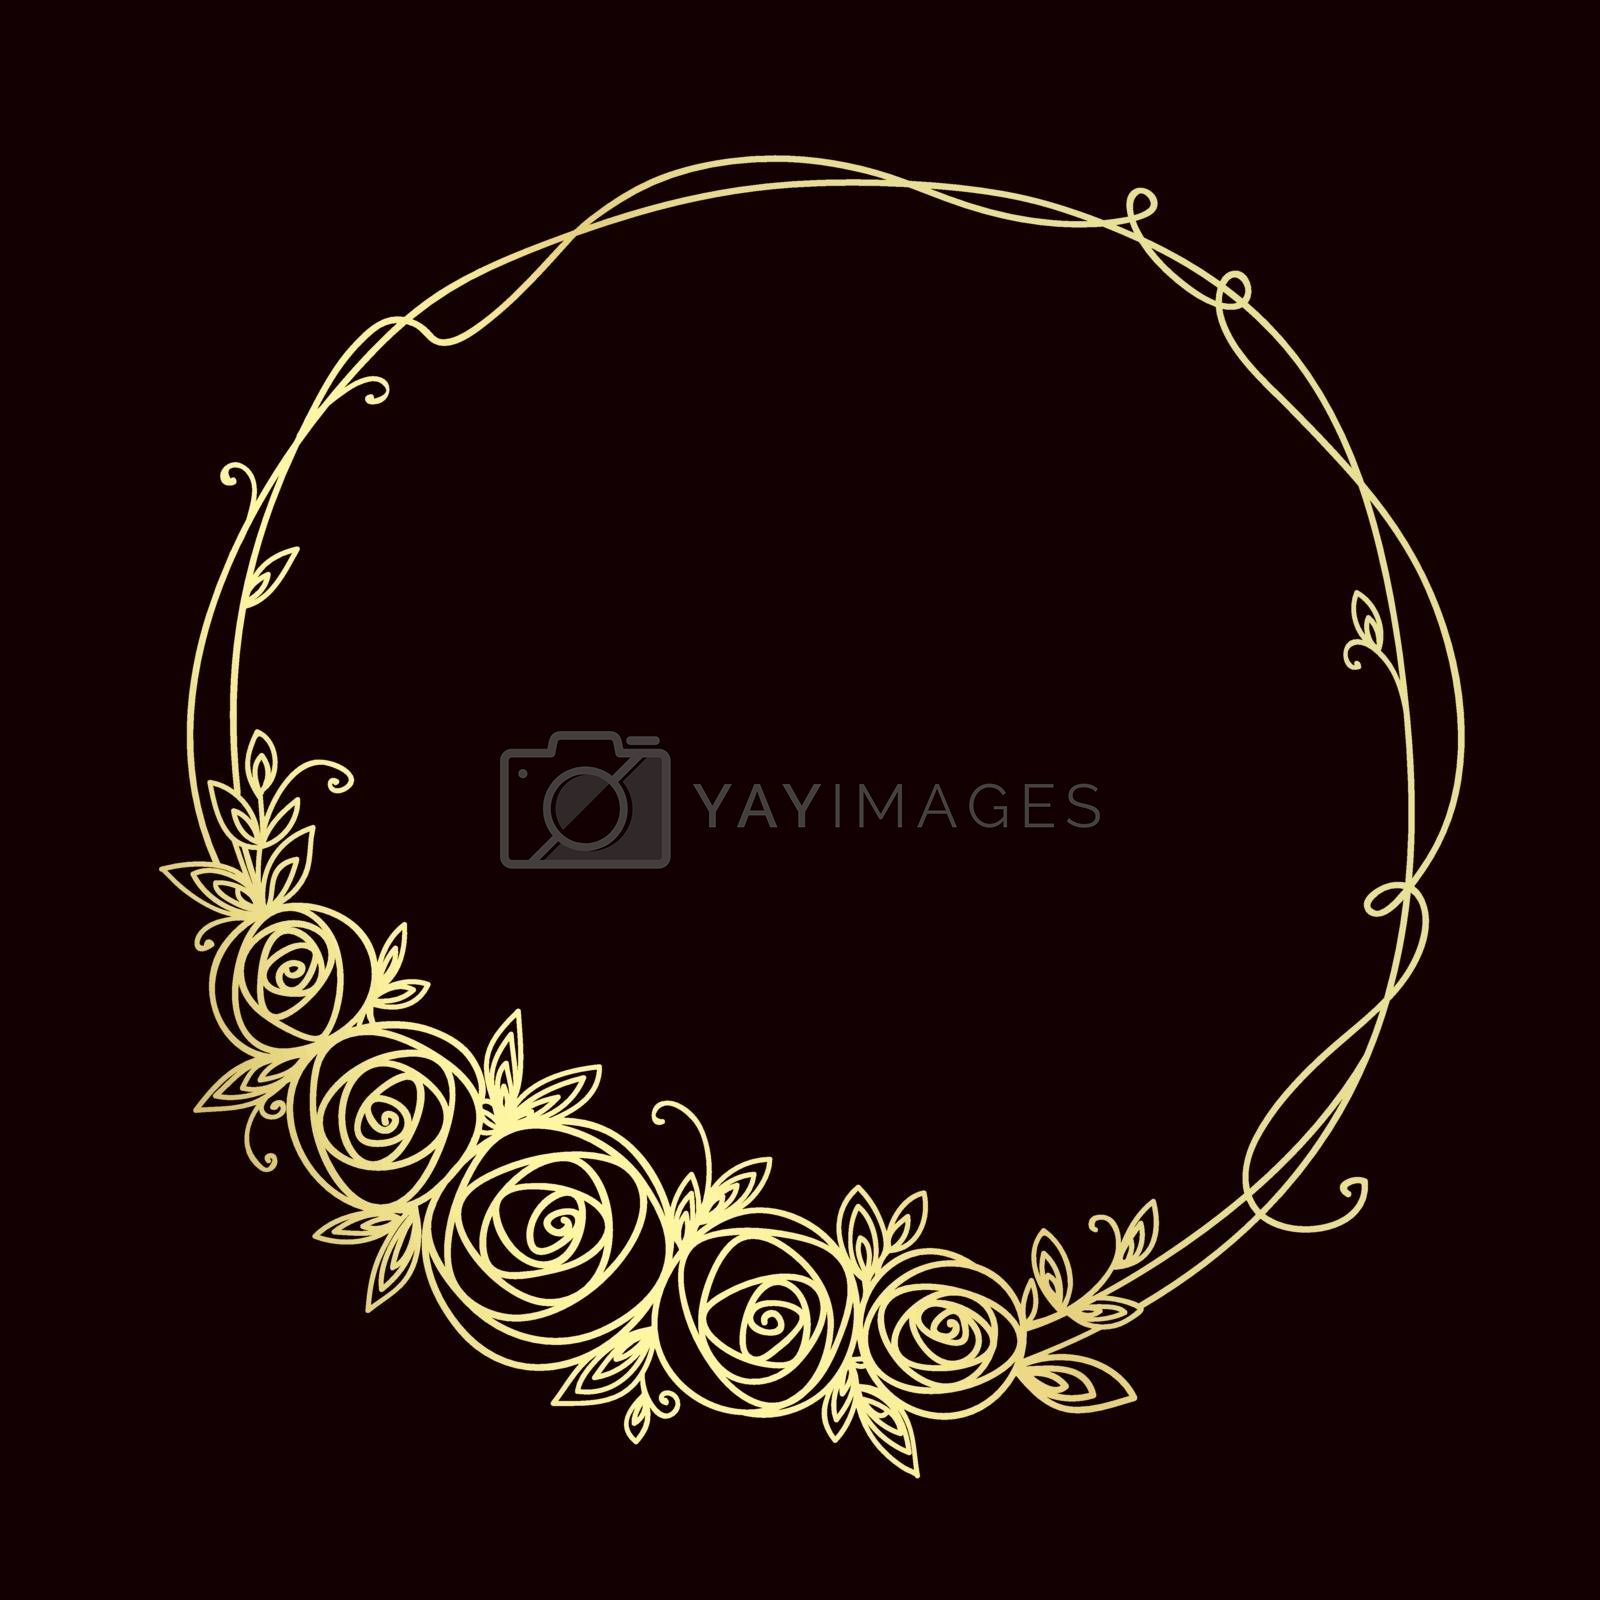 Floral frame. Abstract line elegant element for wedding , birthday, valentines day and other romantic design. Wreath of rose flowers